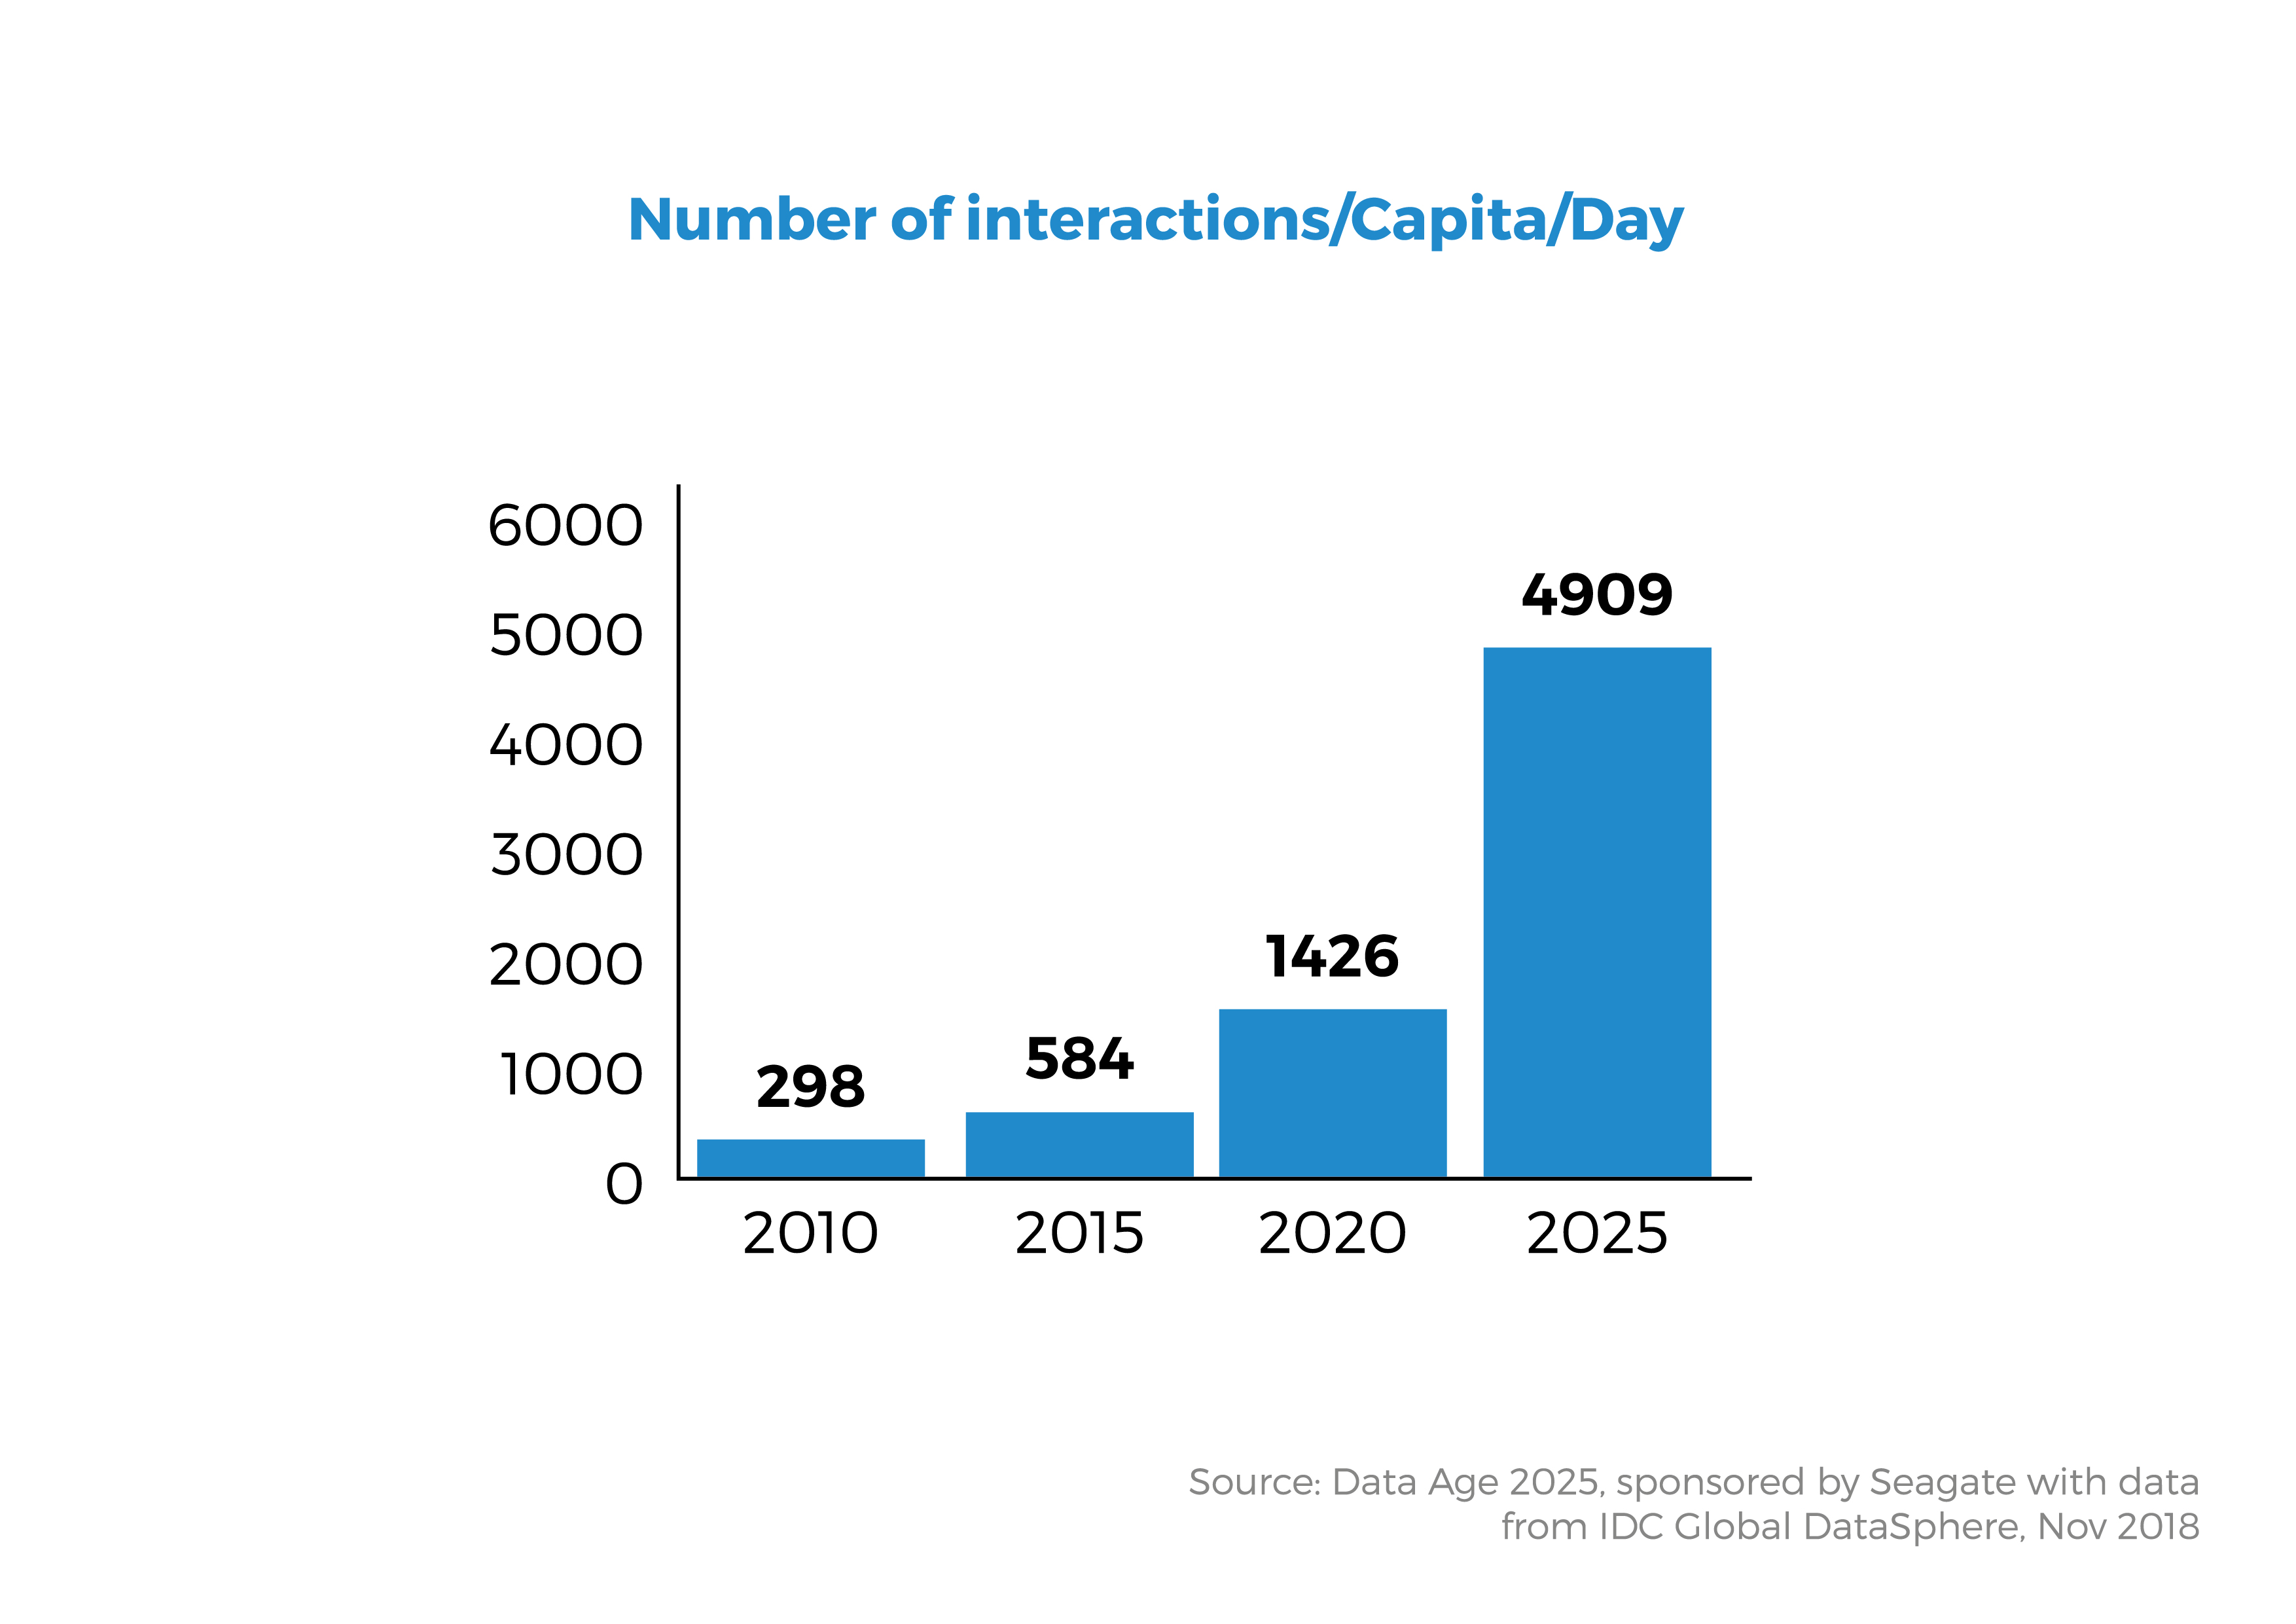 Number of interactions-Capita-Day